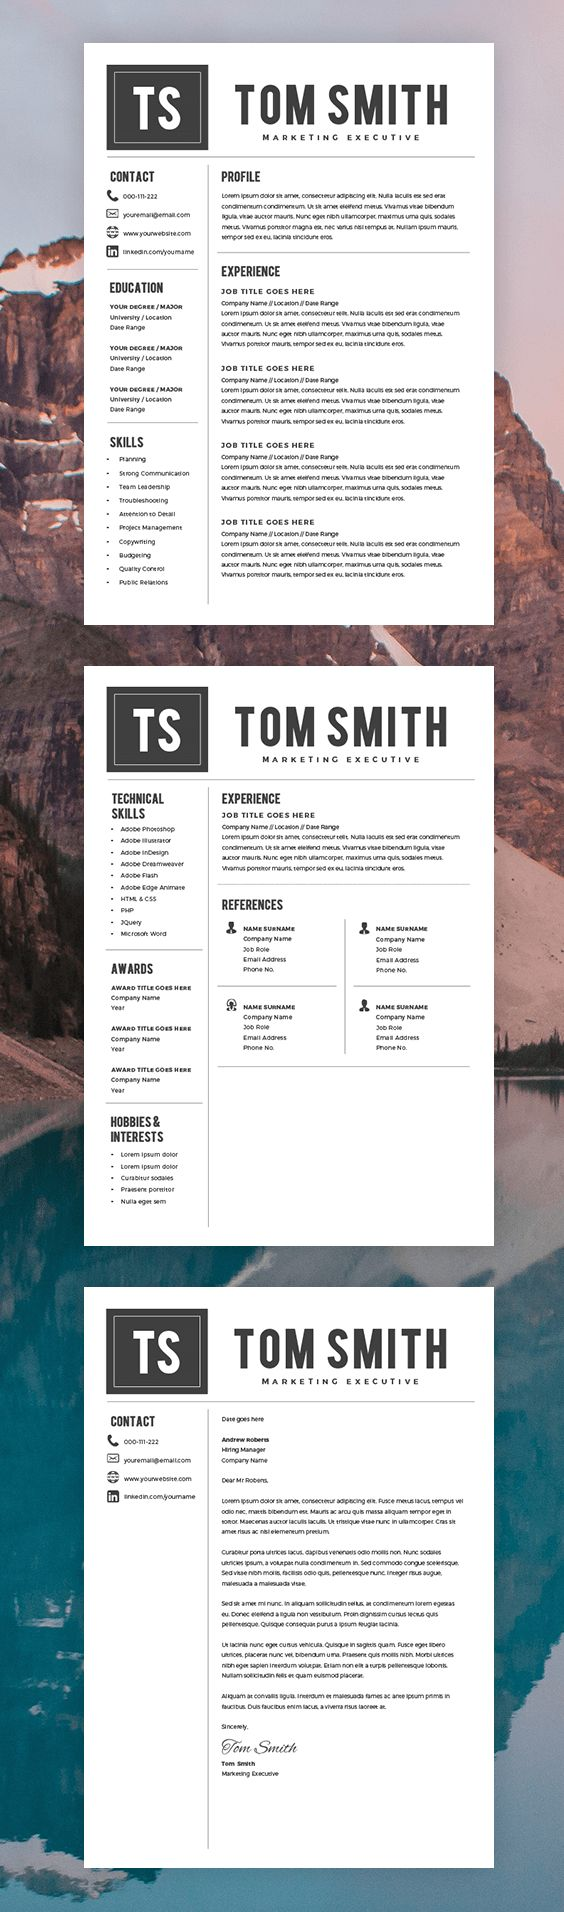 Resume Best Modern Resume best 25 modern resume ideas on pinterest template free cover letter cv ms word mac